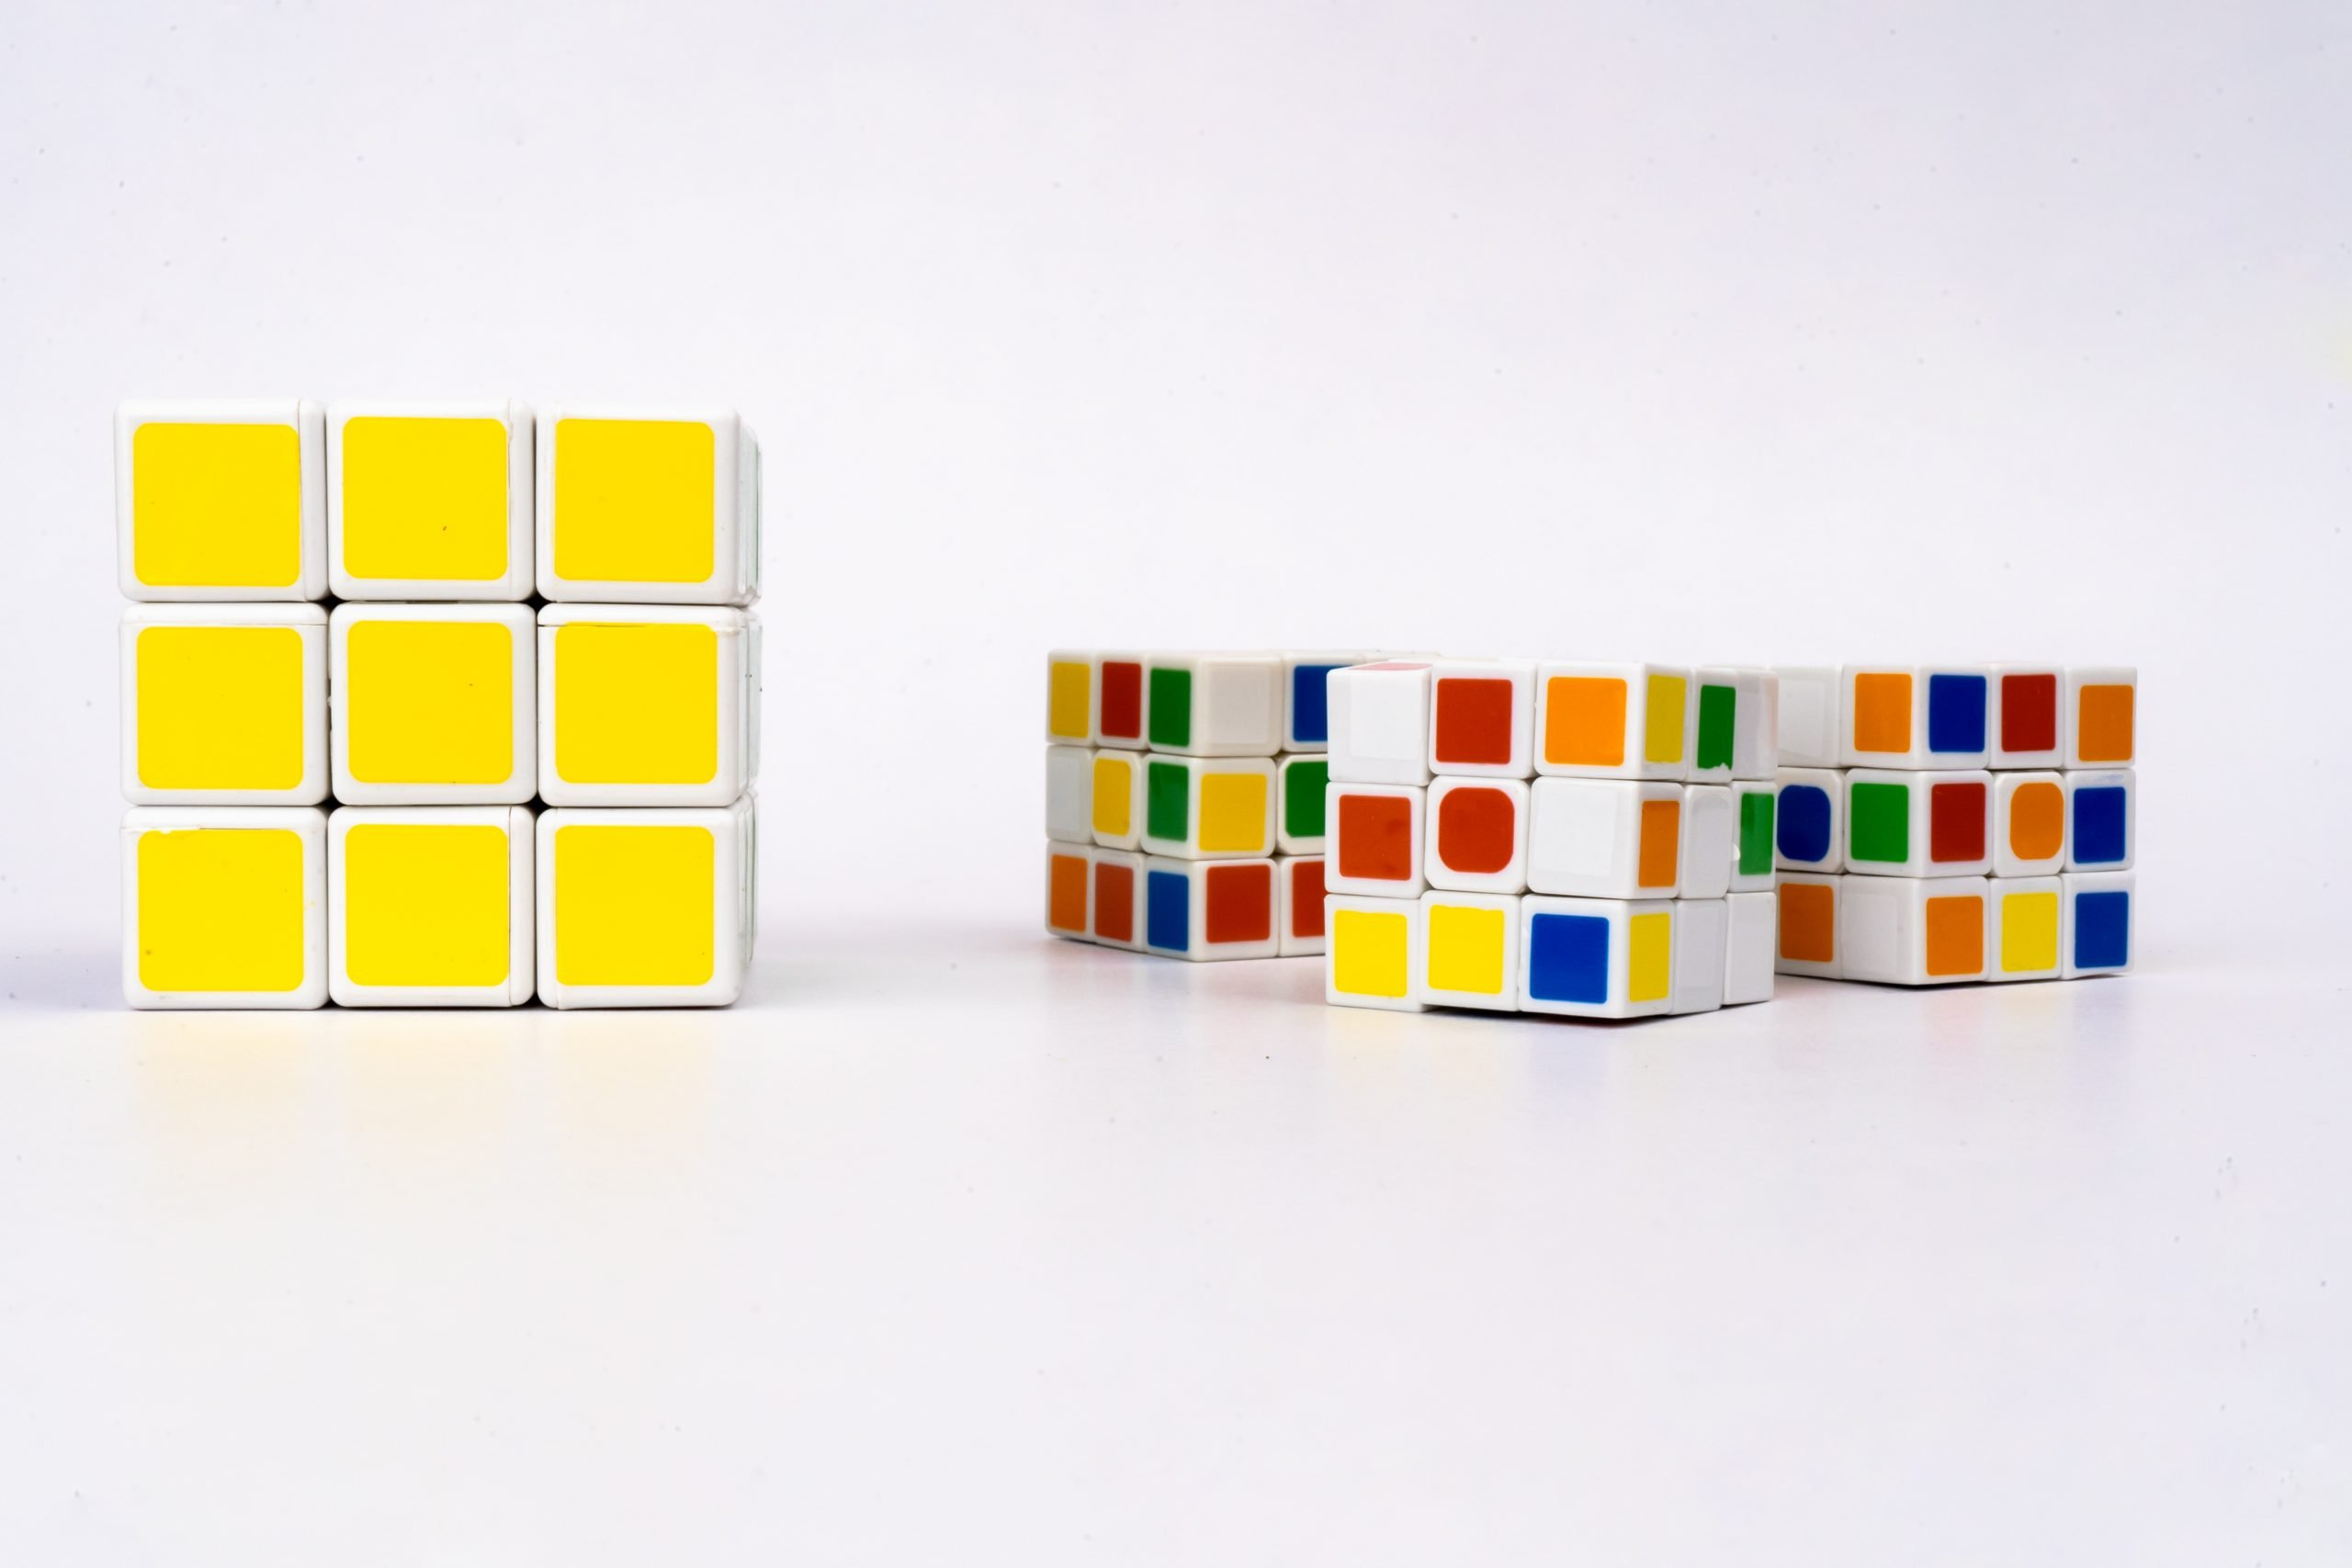 Big and small cubes